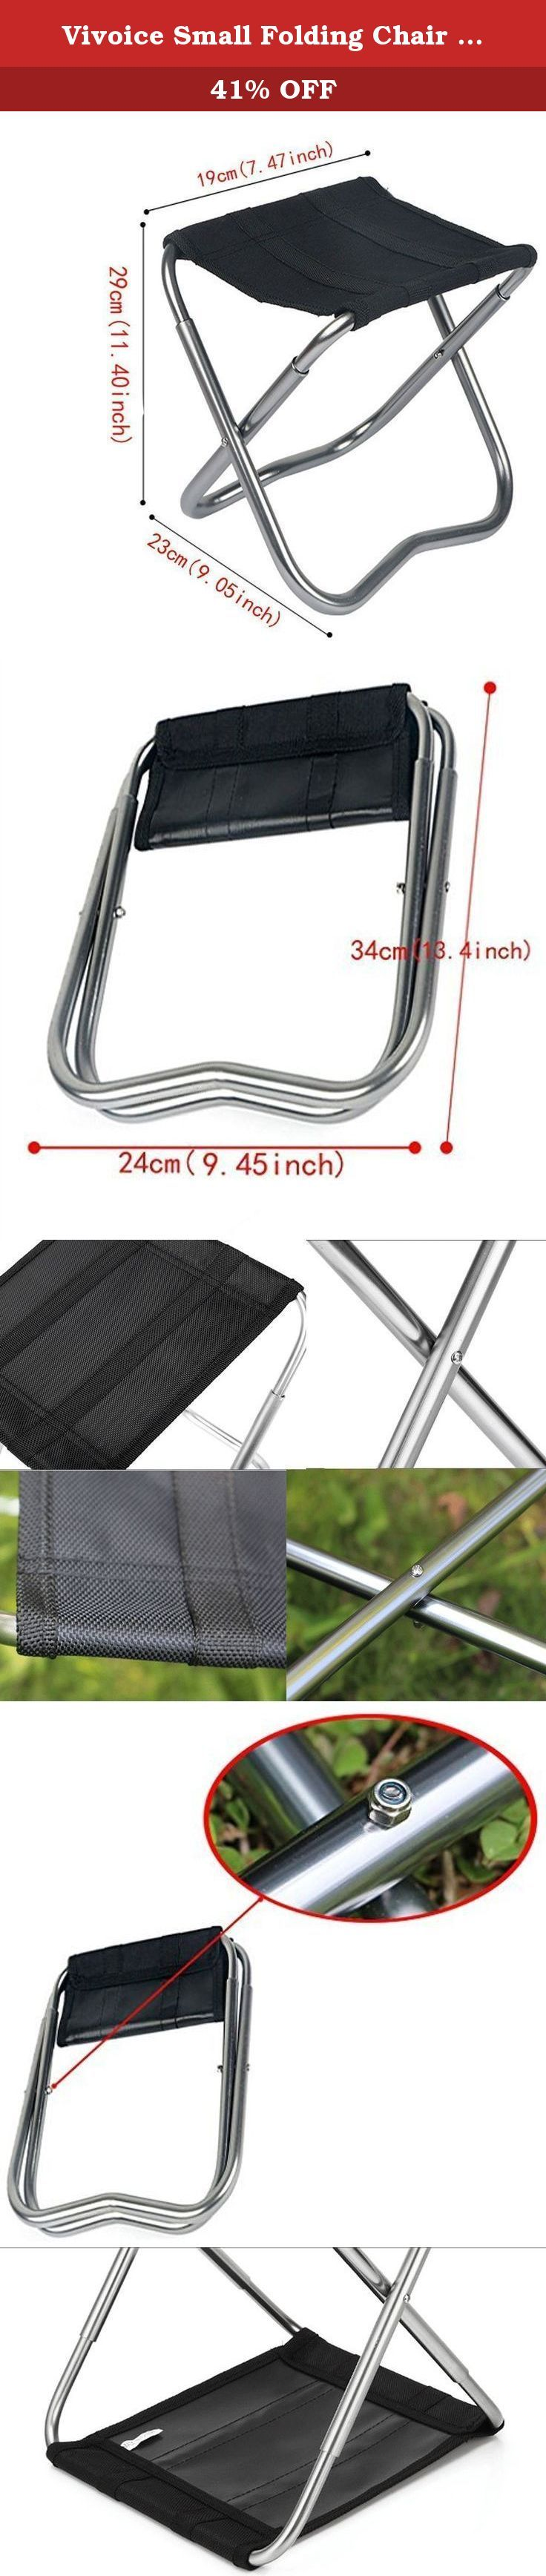 Vivoice Small Folding Chair Stool Camping Stool Furniture Stools Camp Stool for Camping/Traveling. The main material of high strength aluminum alloy, its strength is good,texture,light,compact and solid,lightweight and flexible. The Stool can be used as a stool, table or footrest. Unfolded size about 19x29x23CM(7.47x11.40x9.05)inch, folded size about 24x34CM(9.45x13.4)inch ,Weight about 350g. Folding design makes it easy to take everywhere you go. Tips:Before you buying,please pay…